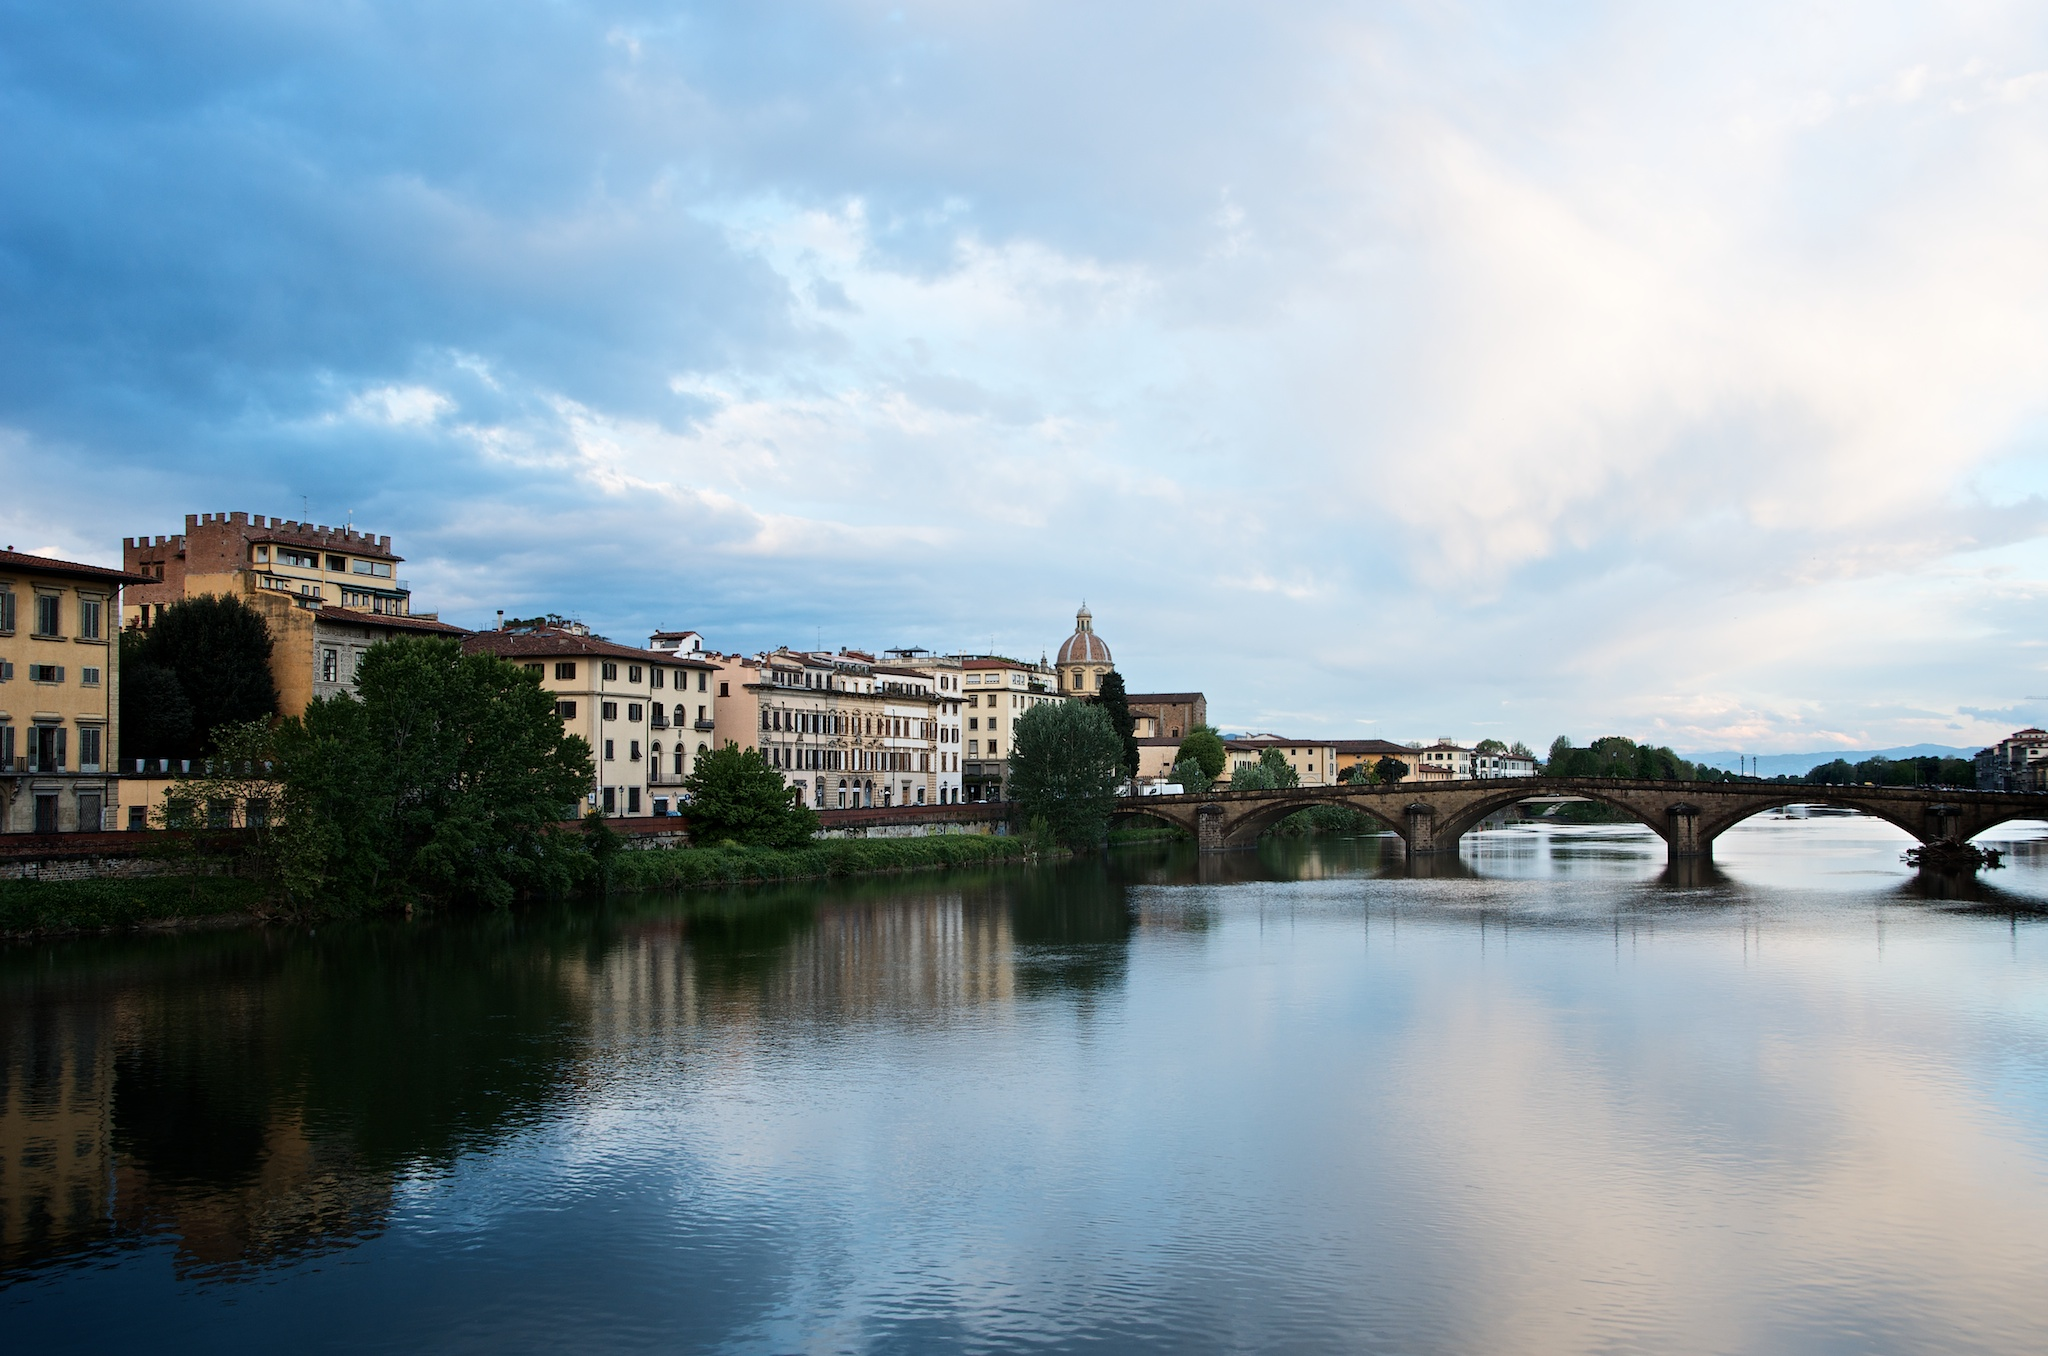 My last sunrise in Florence. This shot is actually quite nice, pleasing, peaceful. Lacking foreground, however.